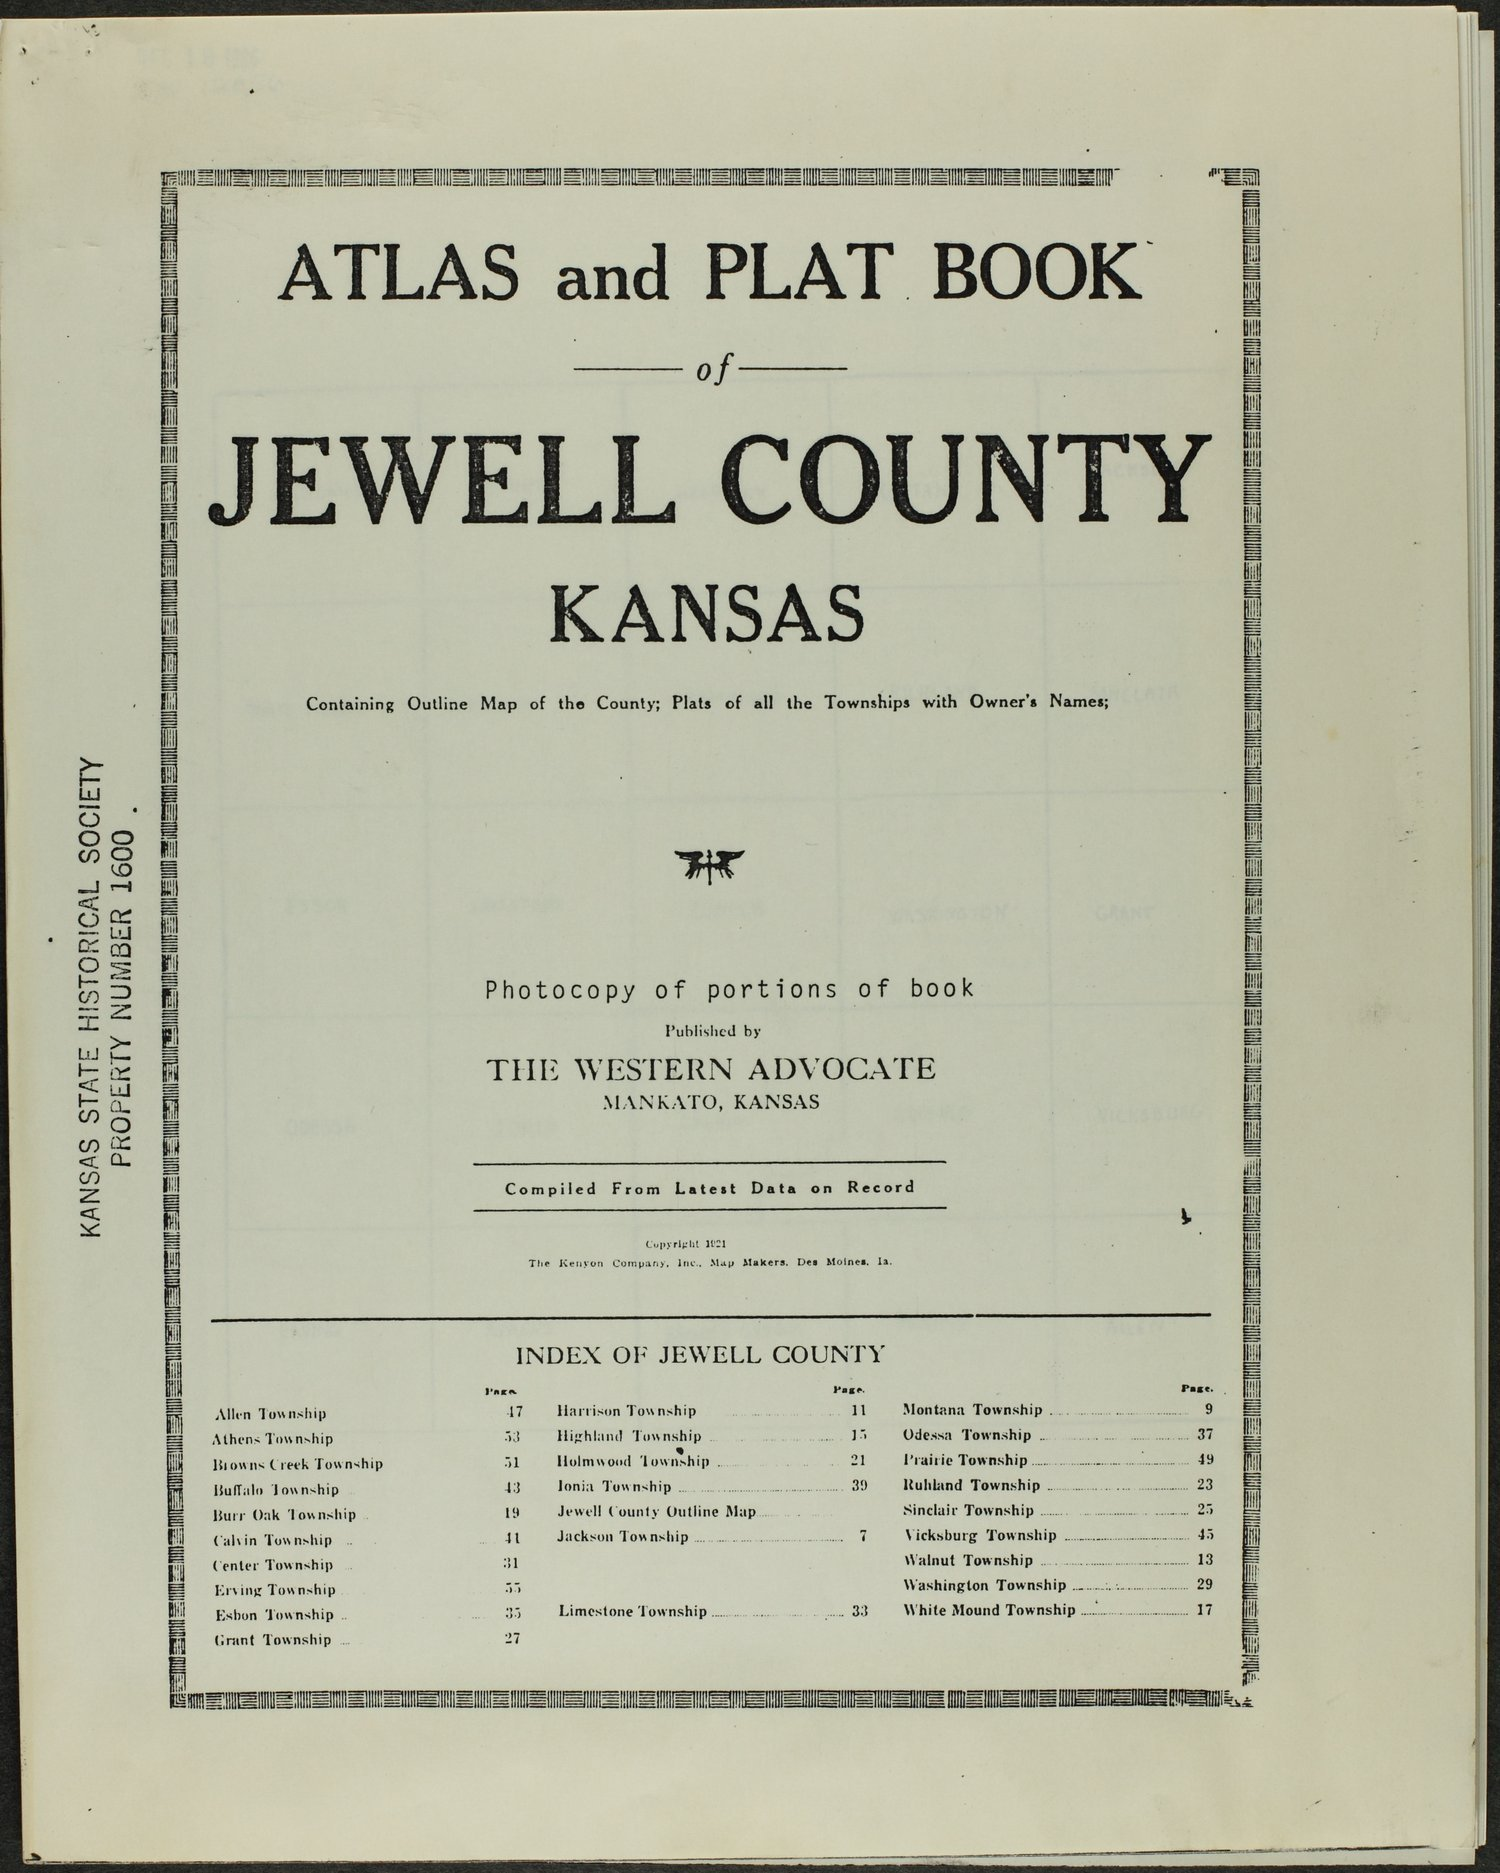 Atlas and plat book of Jewell County, Kansas - Title Page